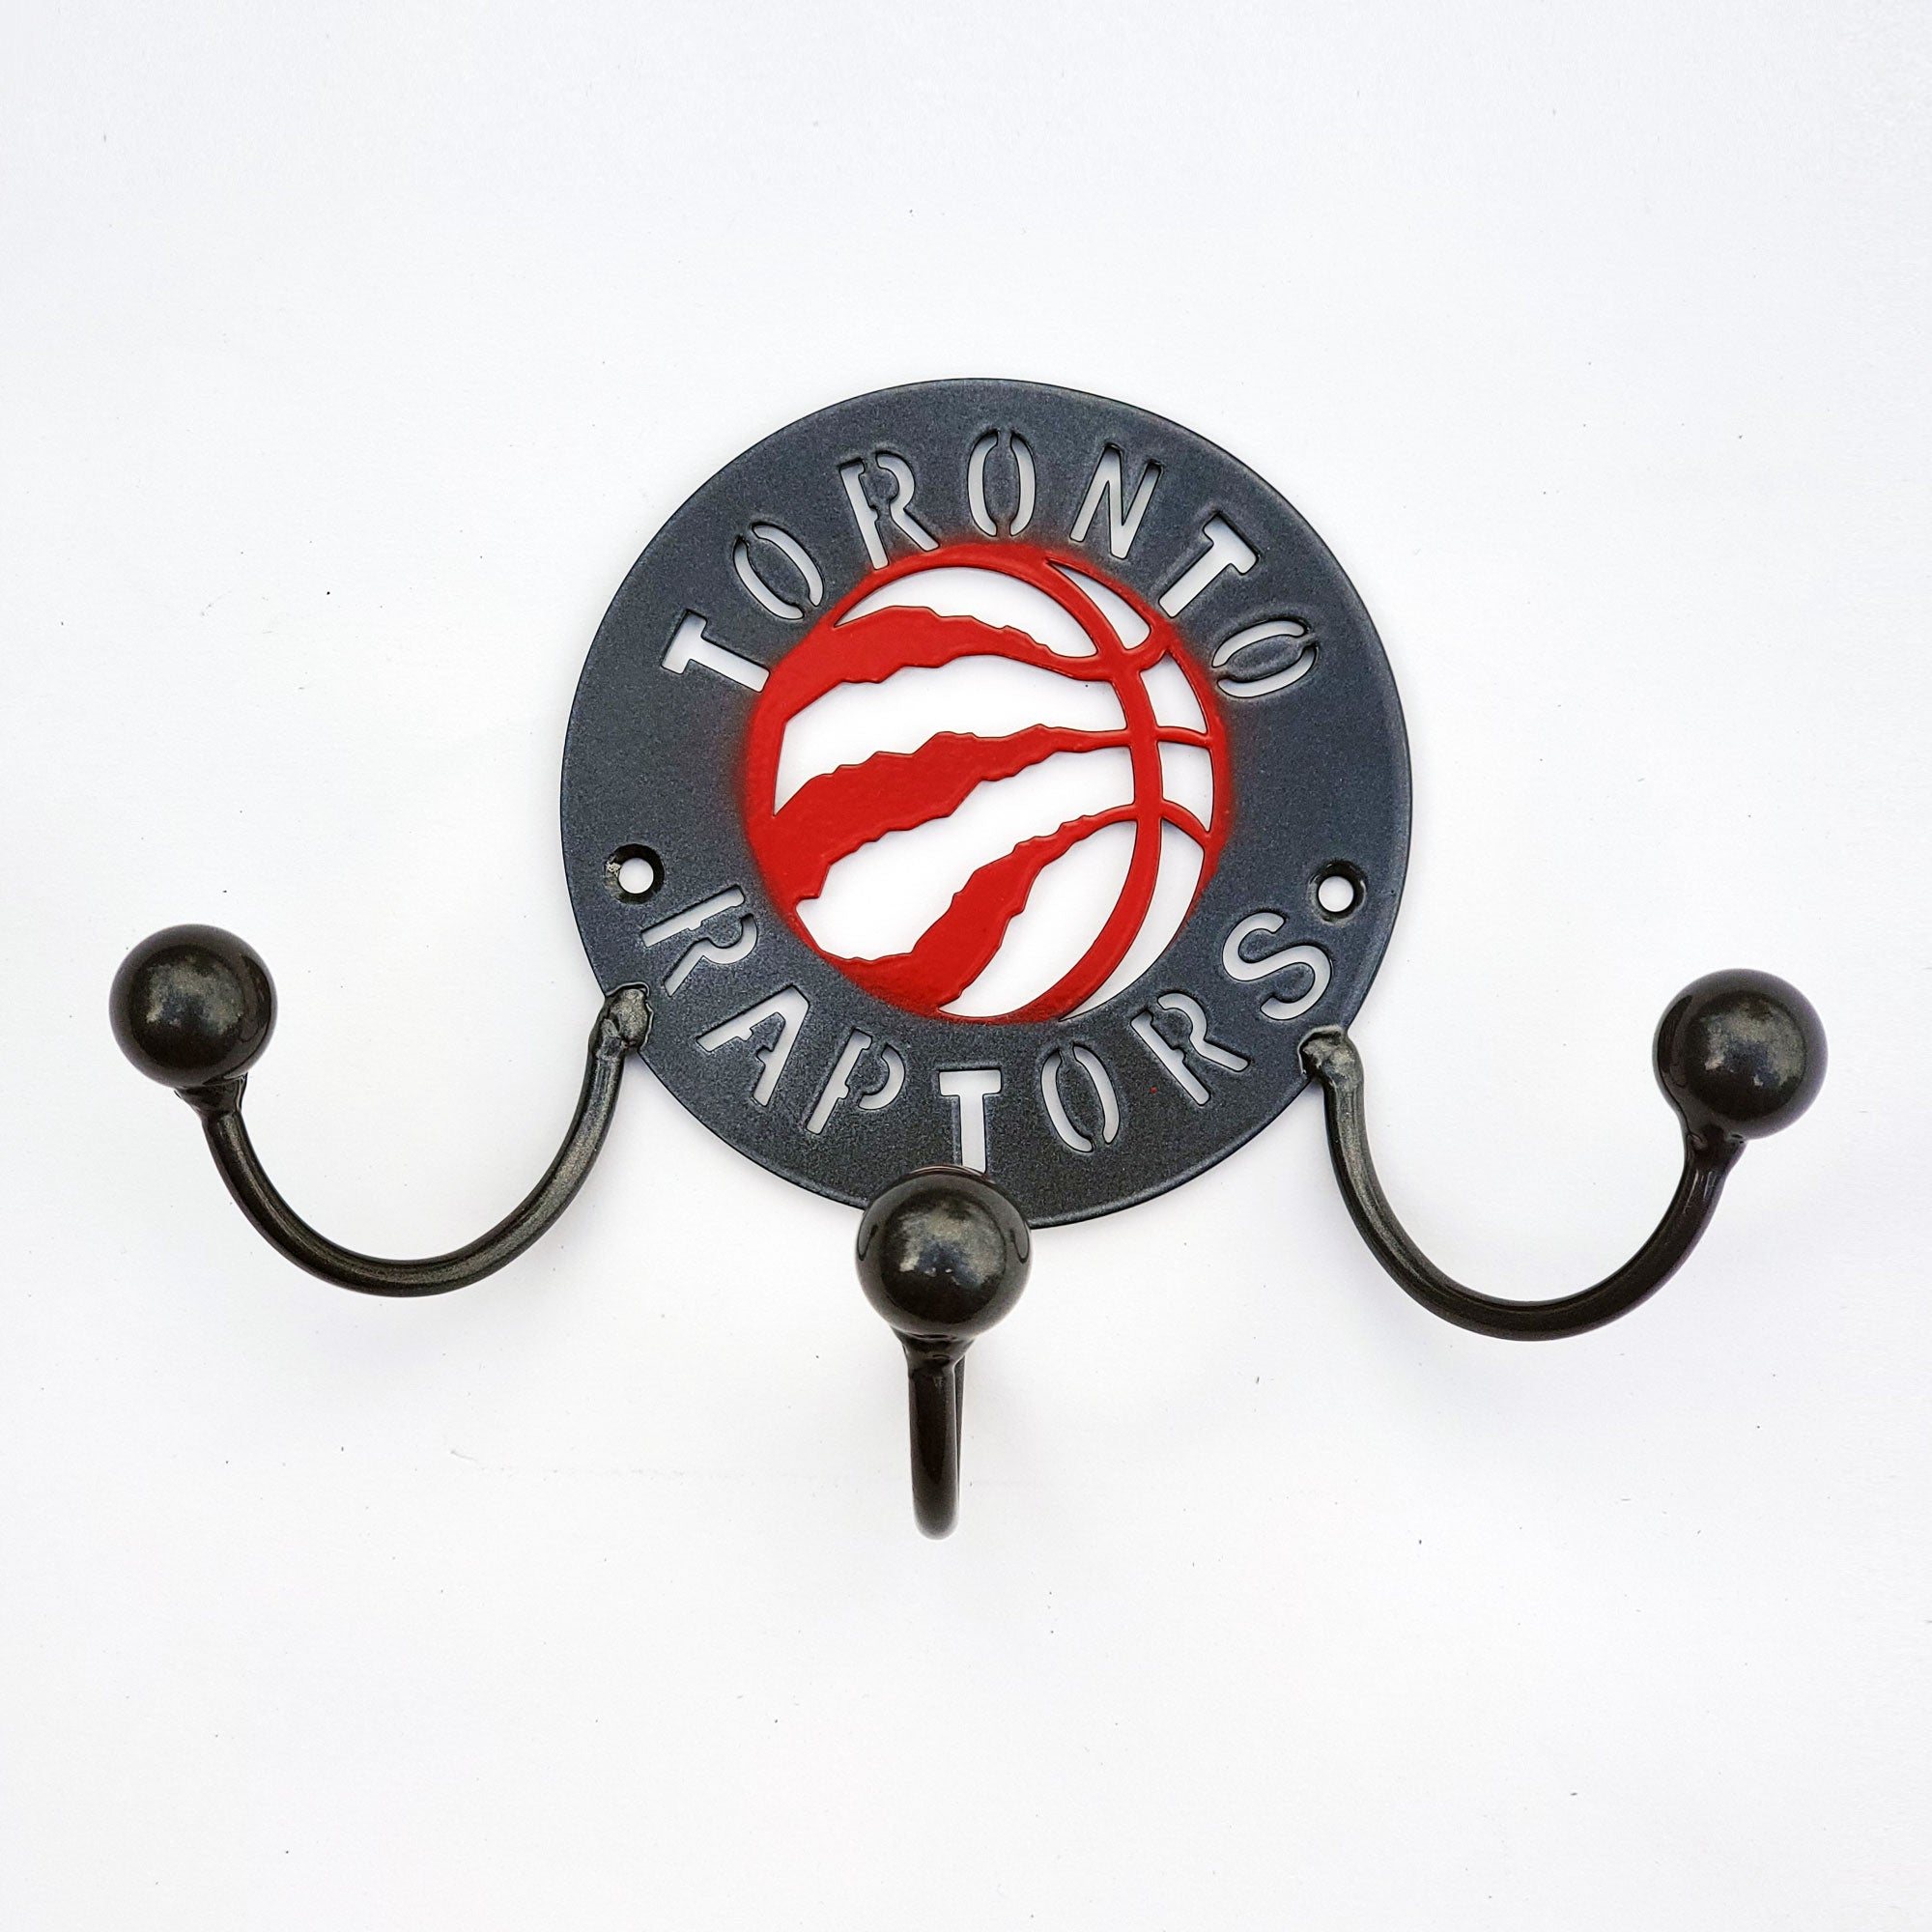 Metal Wall Art Award Displays Hangers for Toronto Raptors Fans with Colored Basketball Home Decor